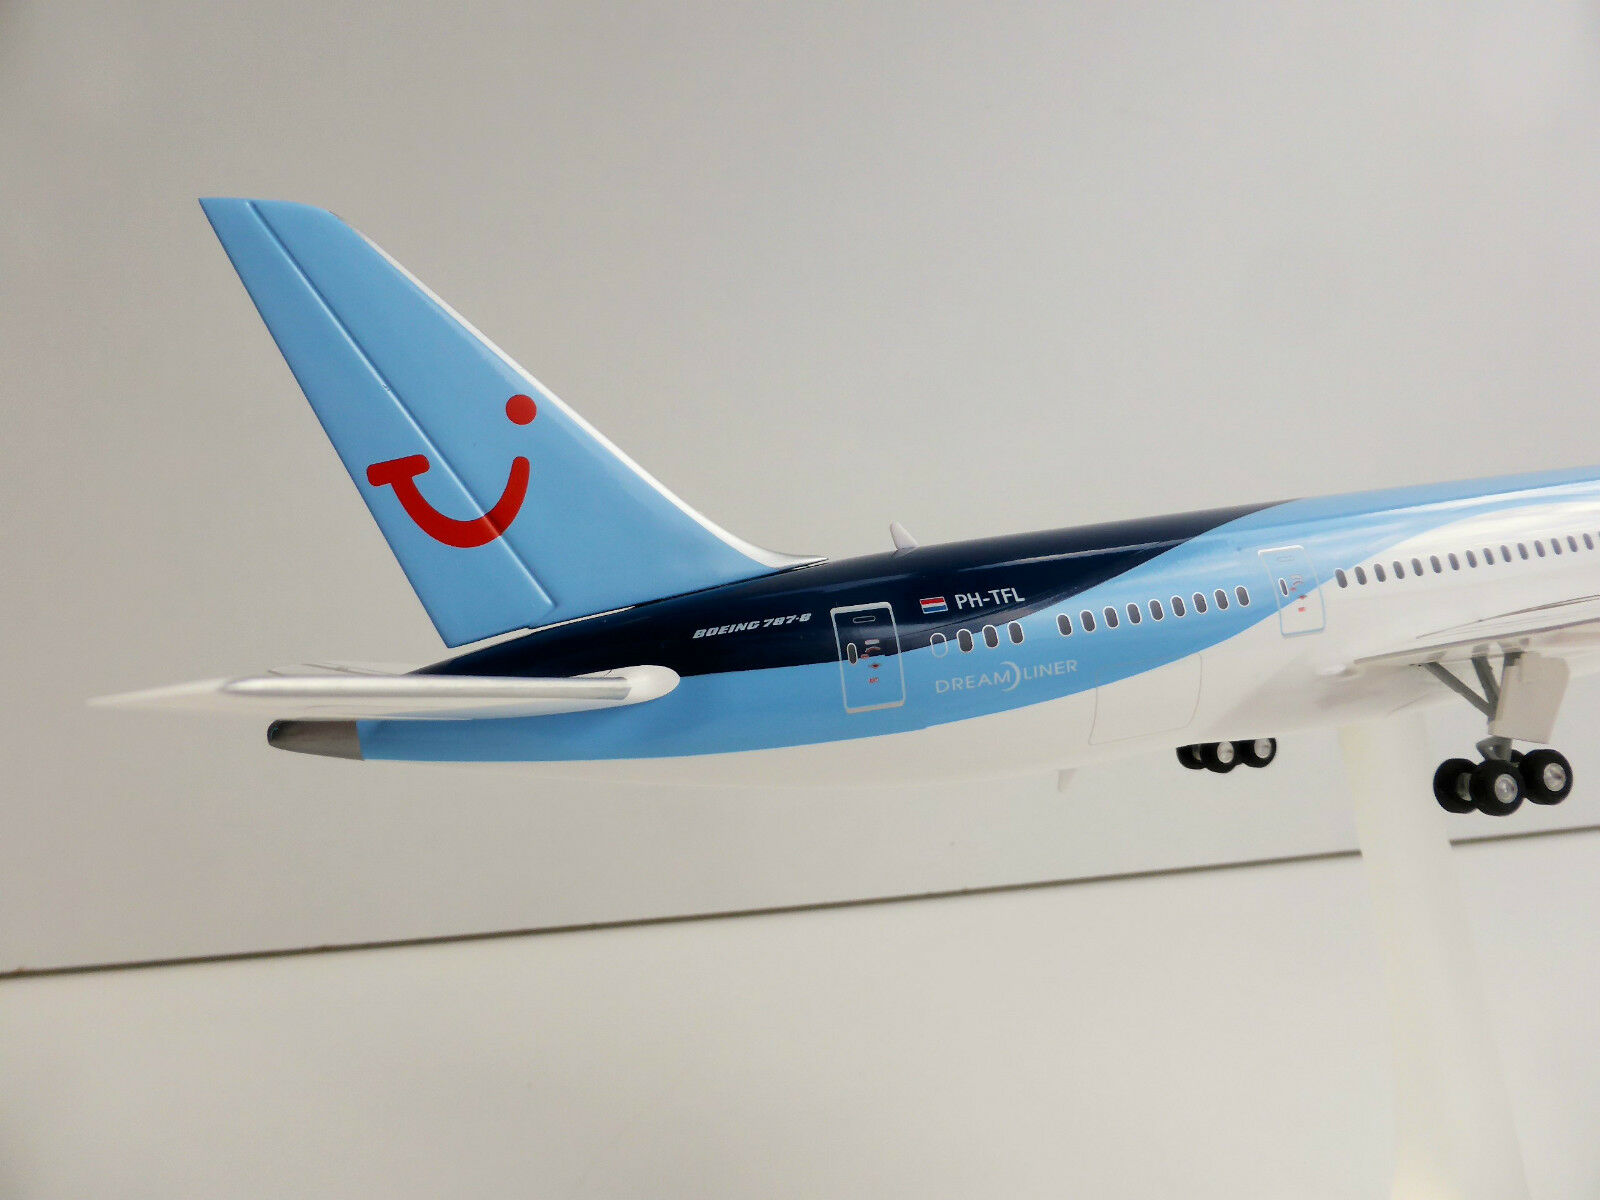 TUI AIRLINES BOEING 787-8 787-8 787-8 1 200 Herpa 557757 Dreamliner 787 TUIFLY PH-TFL b88a7a